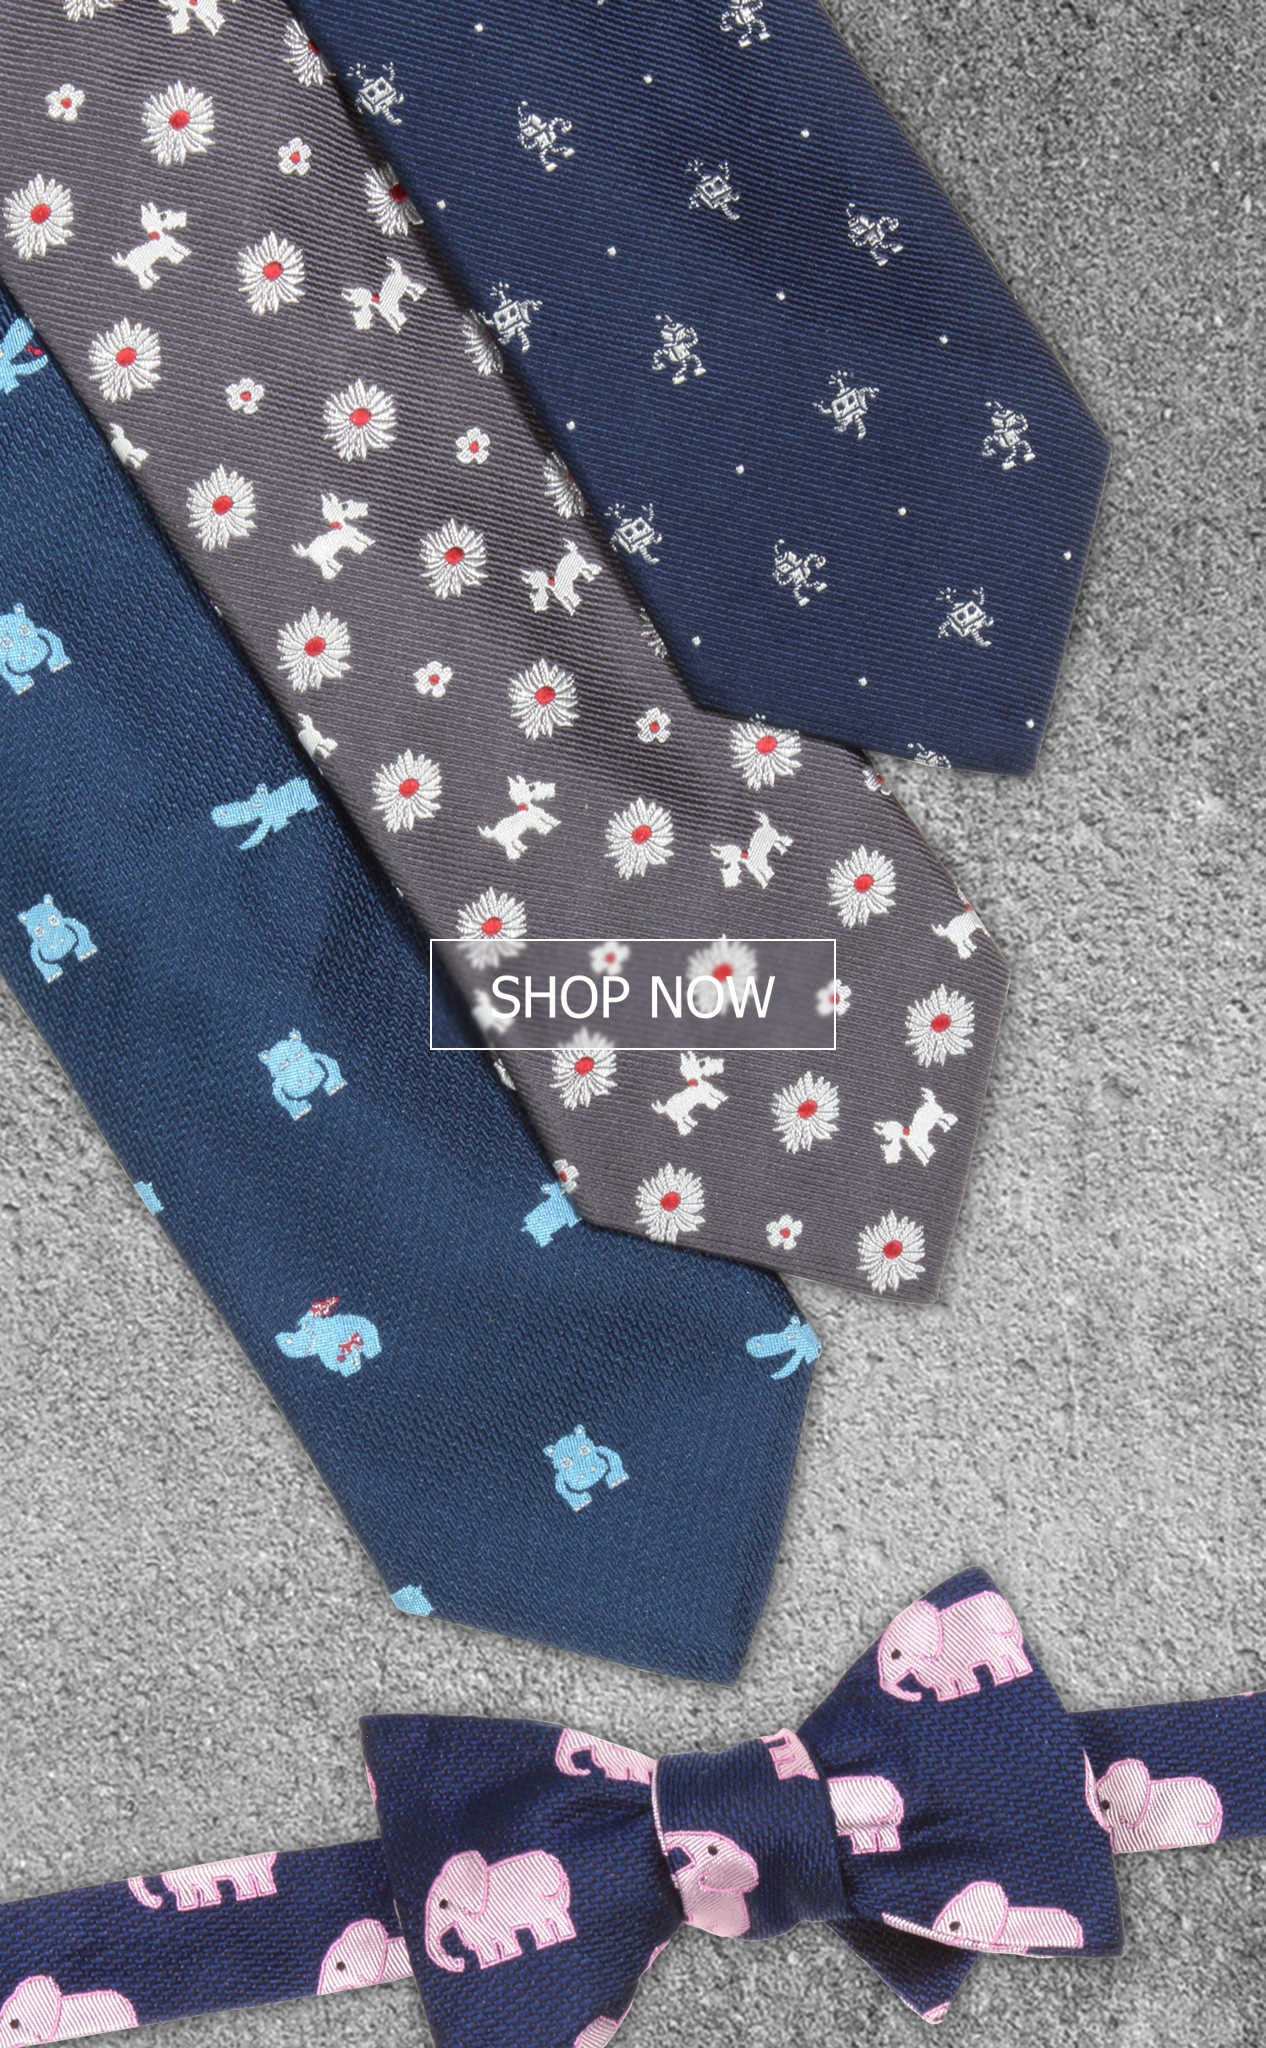 Soxfords Introduces New Silk Embroidered Ties and Bow Ties